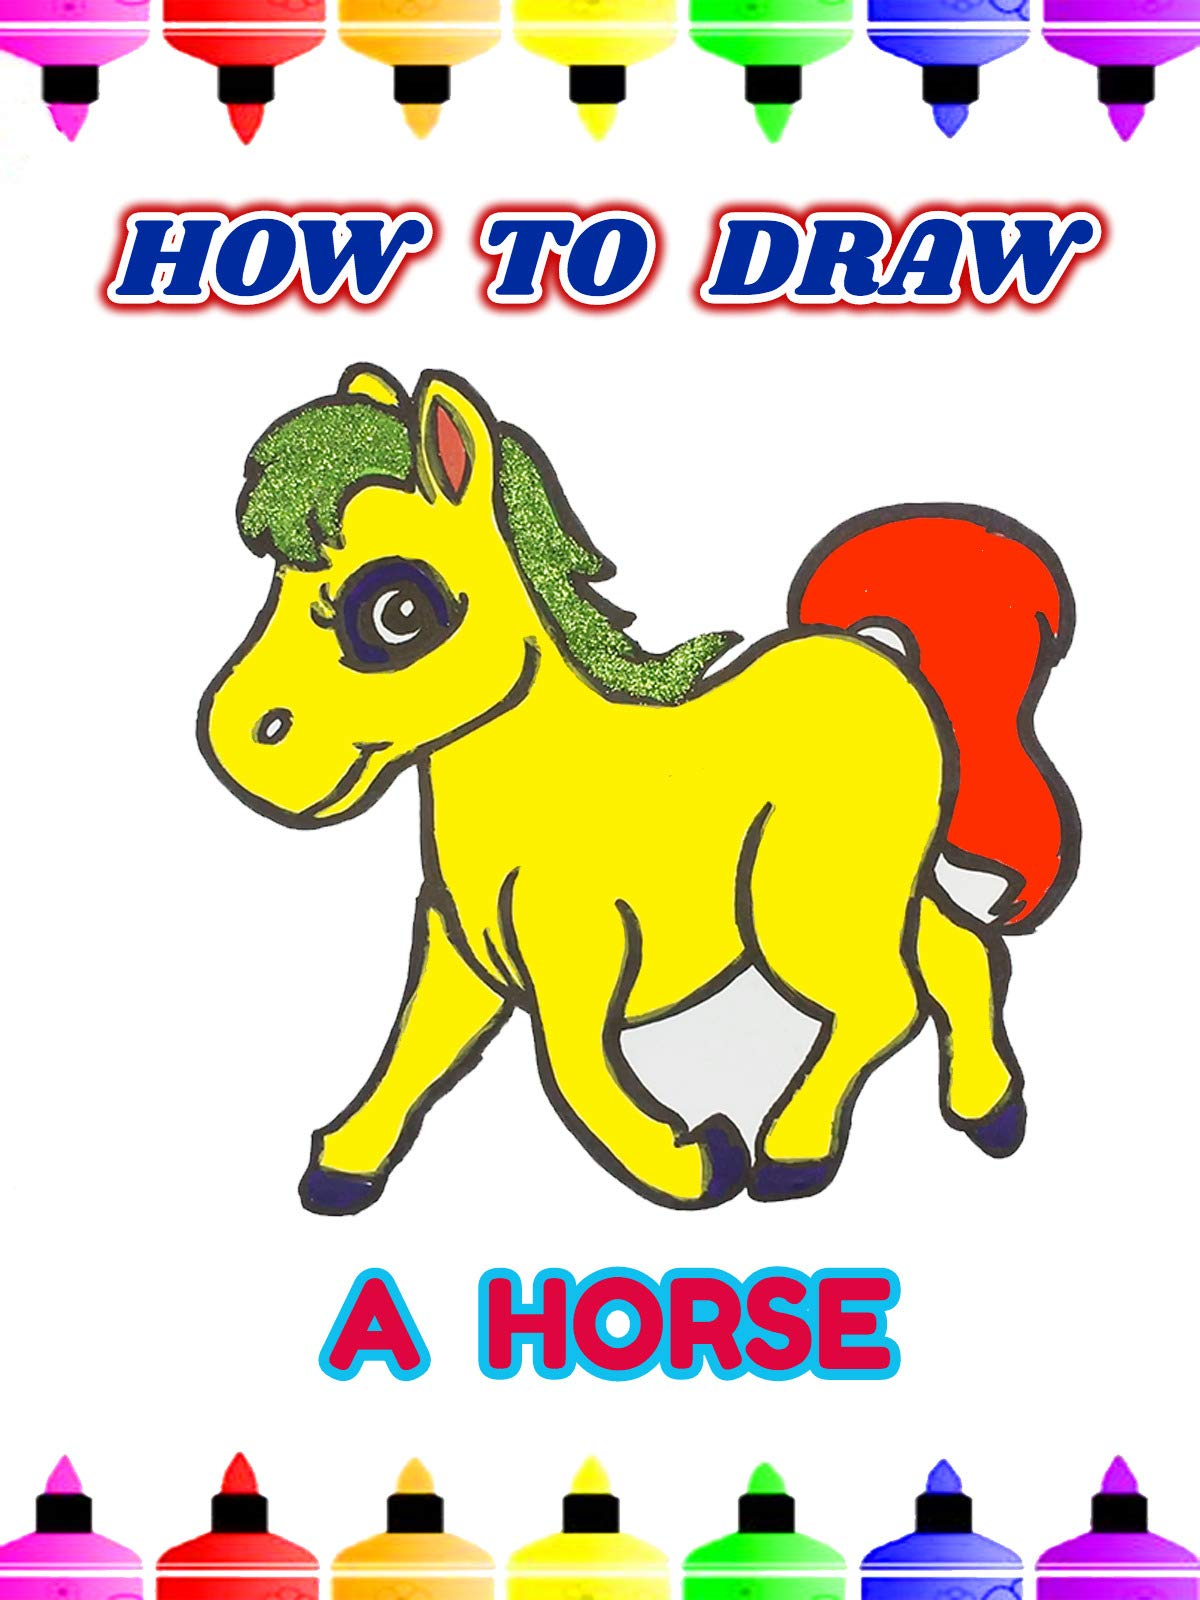 How To Draw A Horse on Amazon Prime Video UK